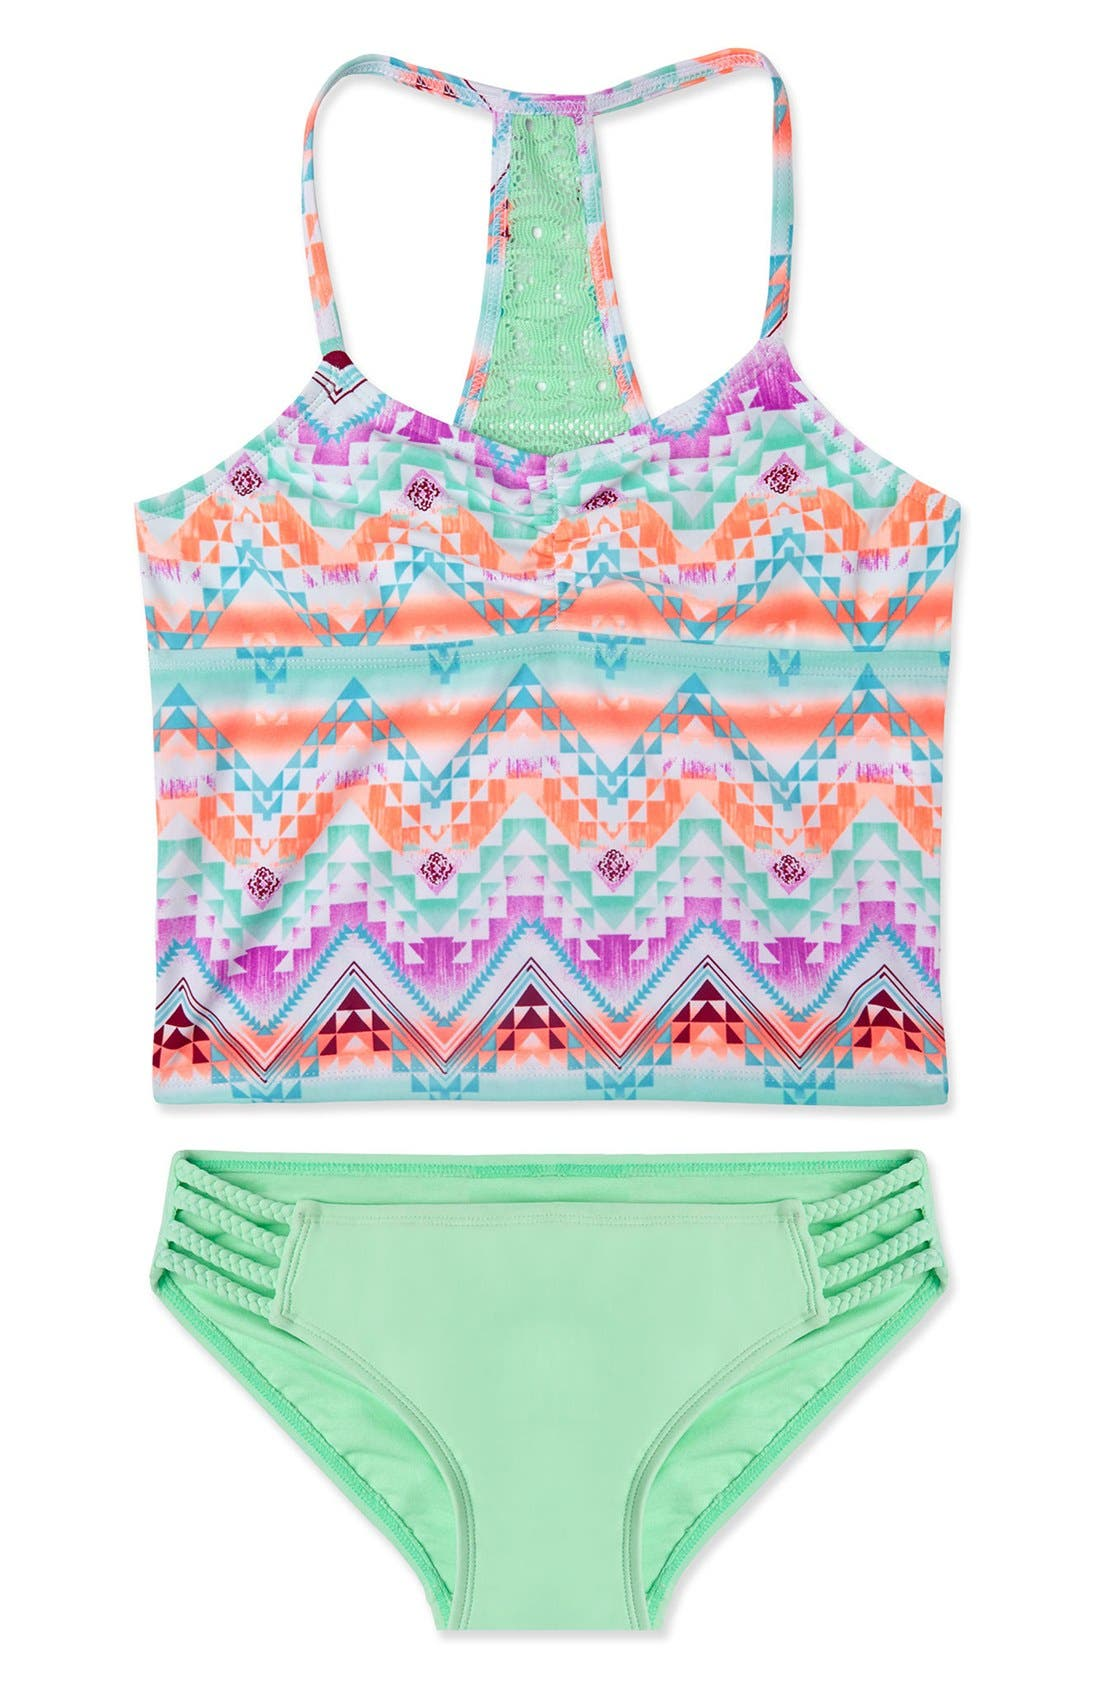 Alternate Image 1 Selected - Gossip Girl 'Desert Mirage' Two-Piece Swimsuit Set (Big Girls)